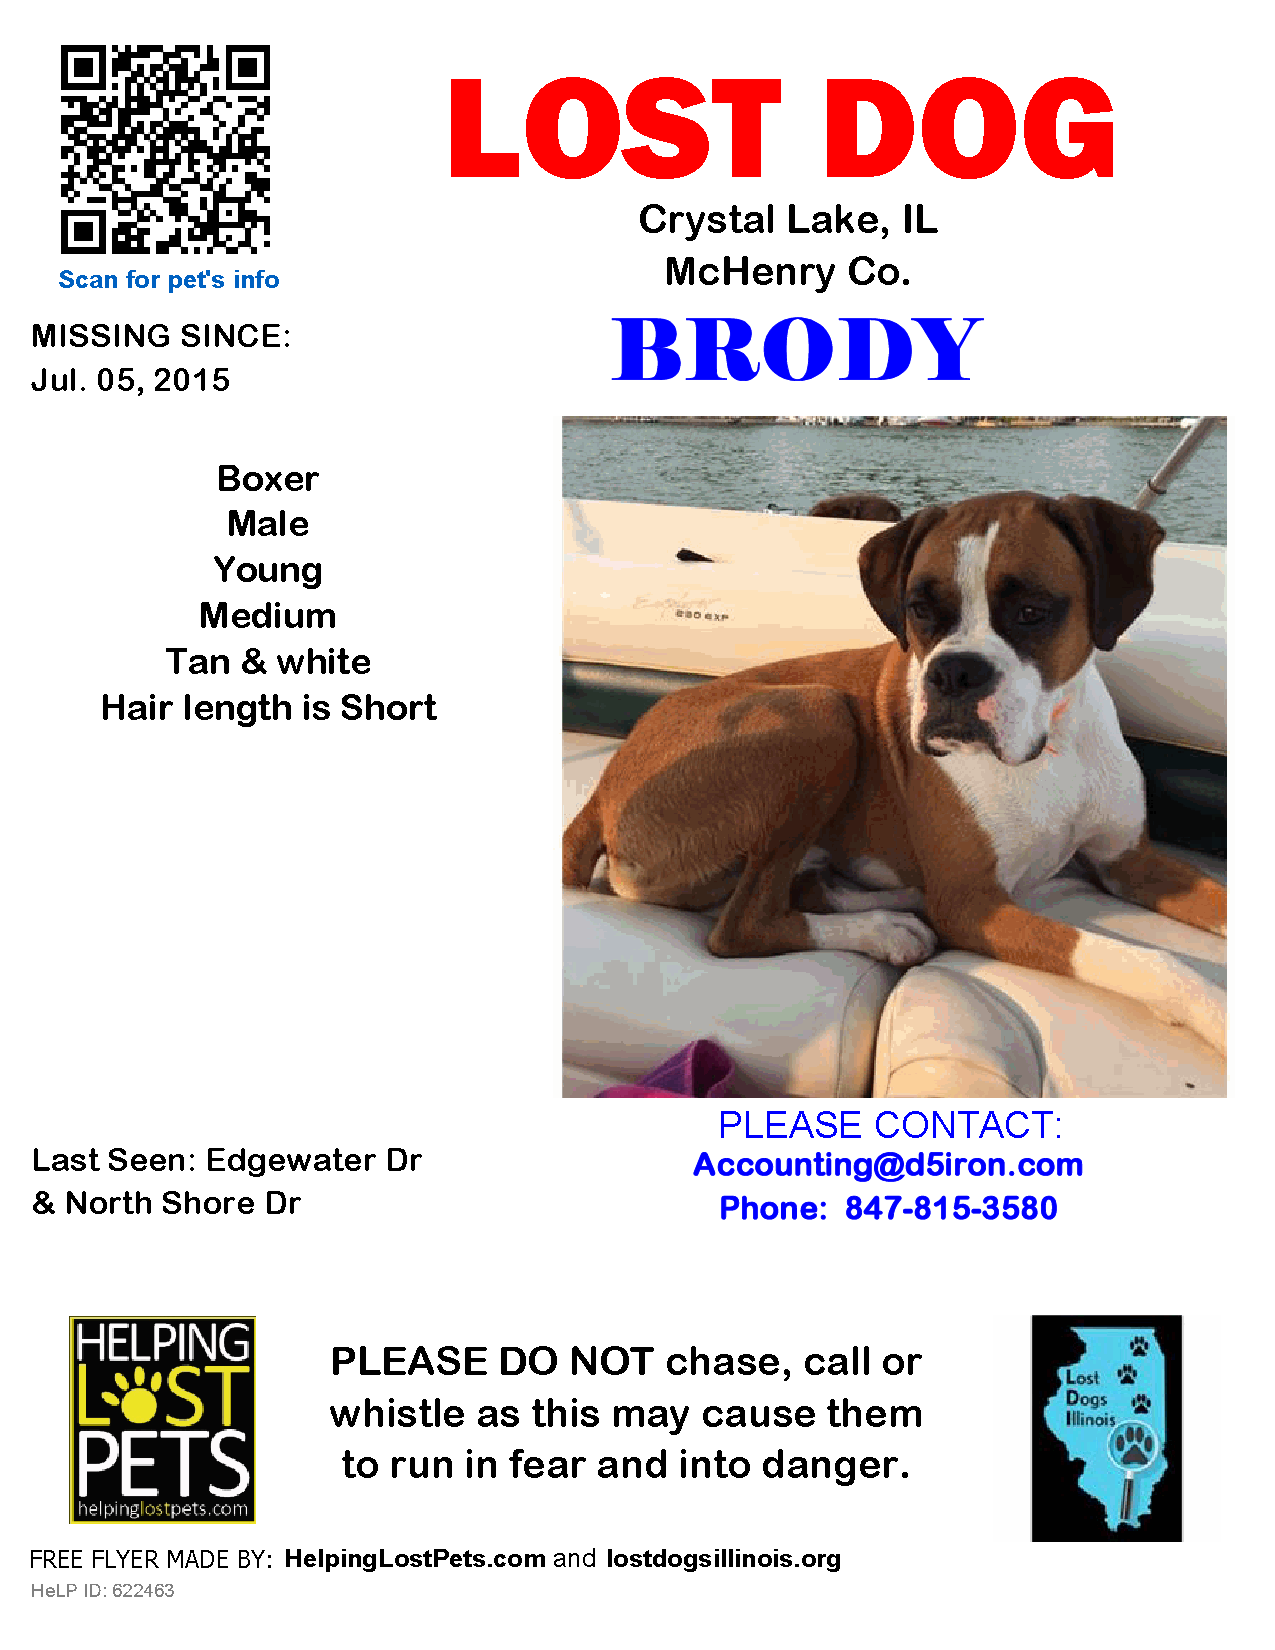 Lost Dog Boxer Crystal Lake, IL, United States